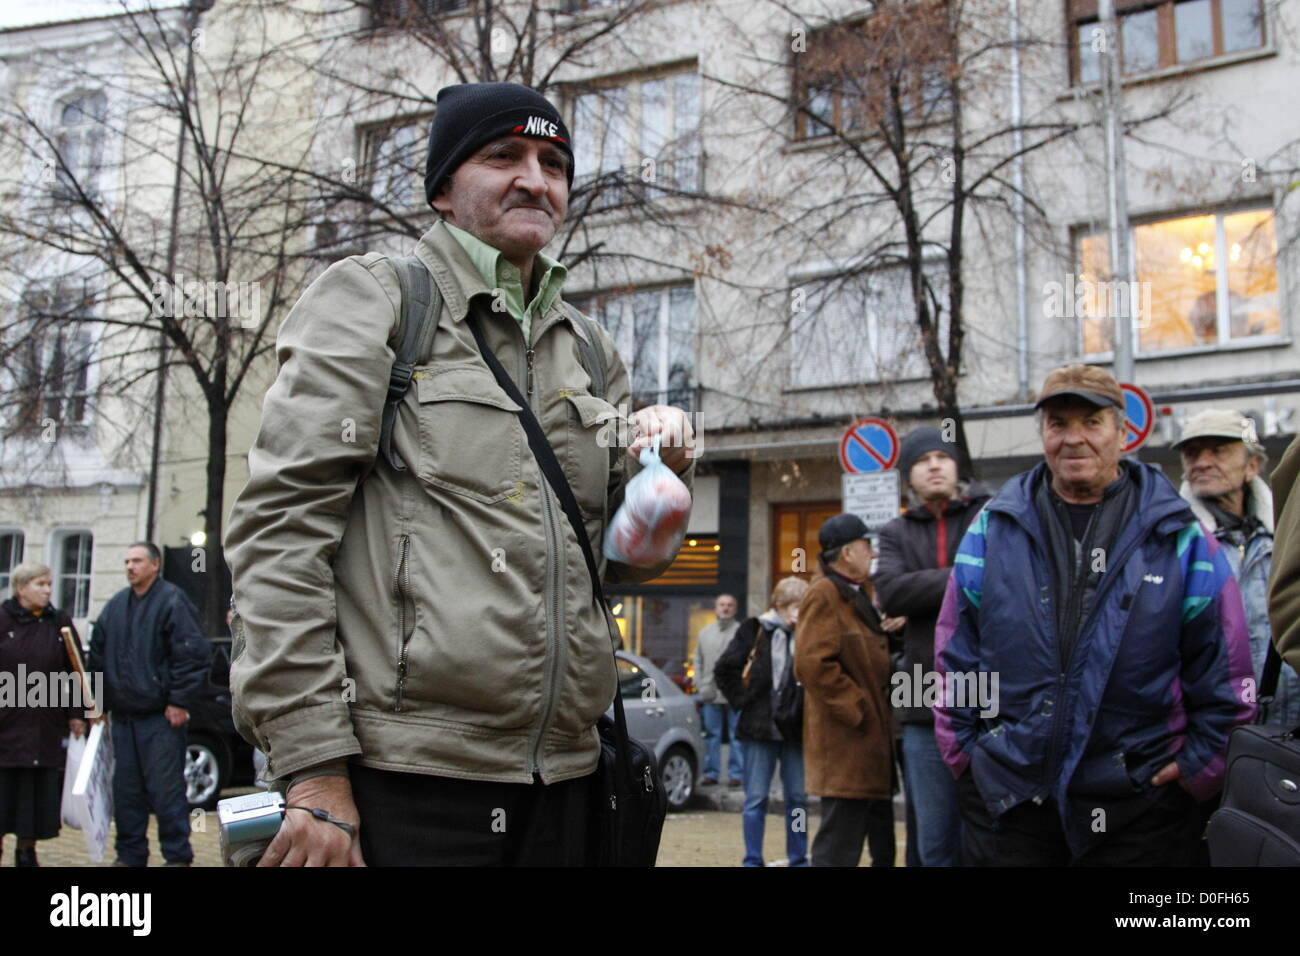 Sofia, Bulgaria; 24th November, 2012. Demonstrator holding a bag with tomatoes as 'ammunition' for the anti - Stock Image